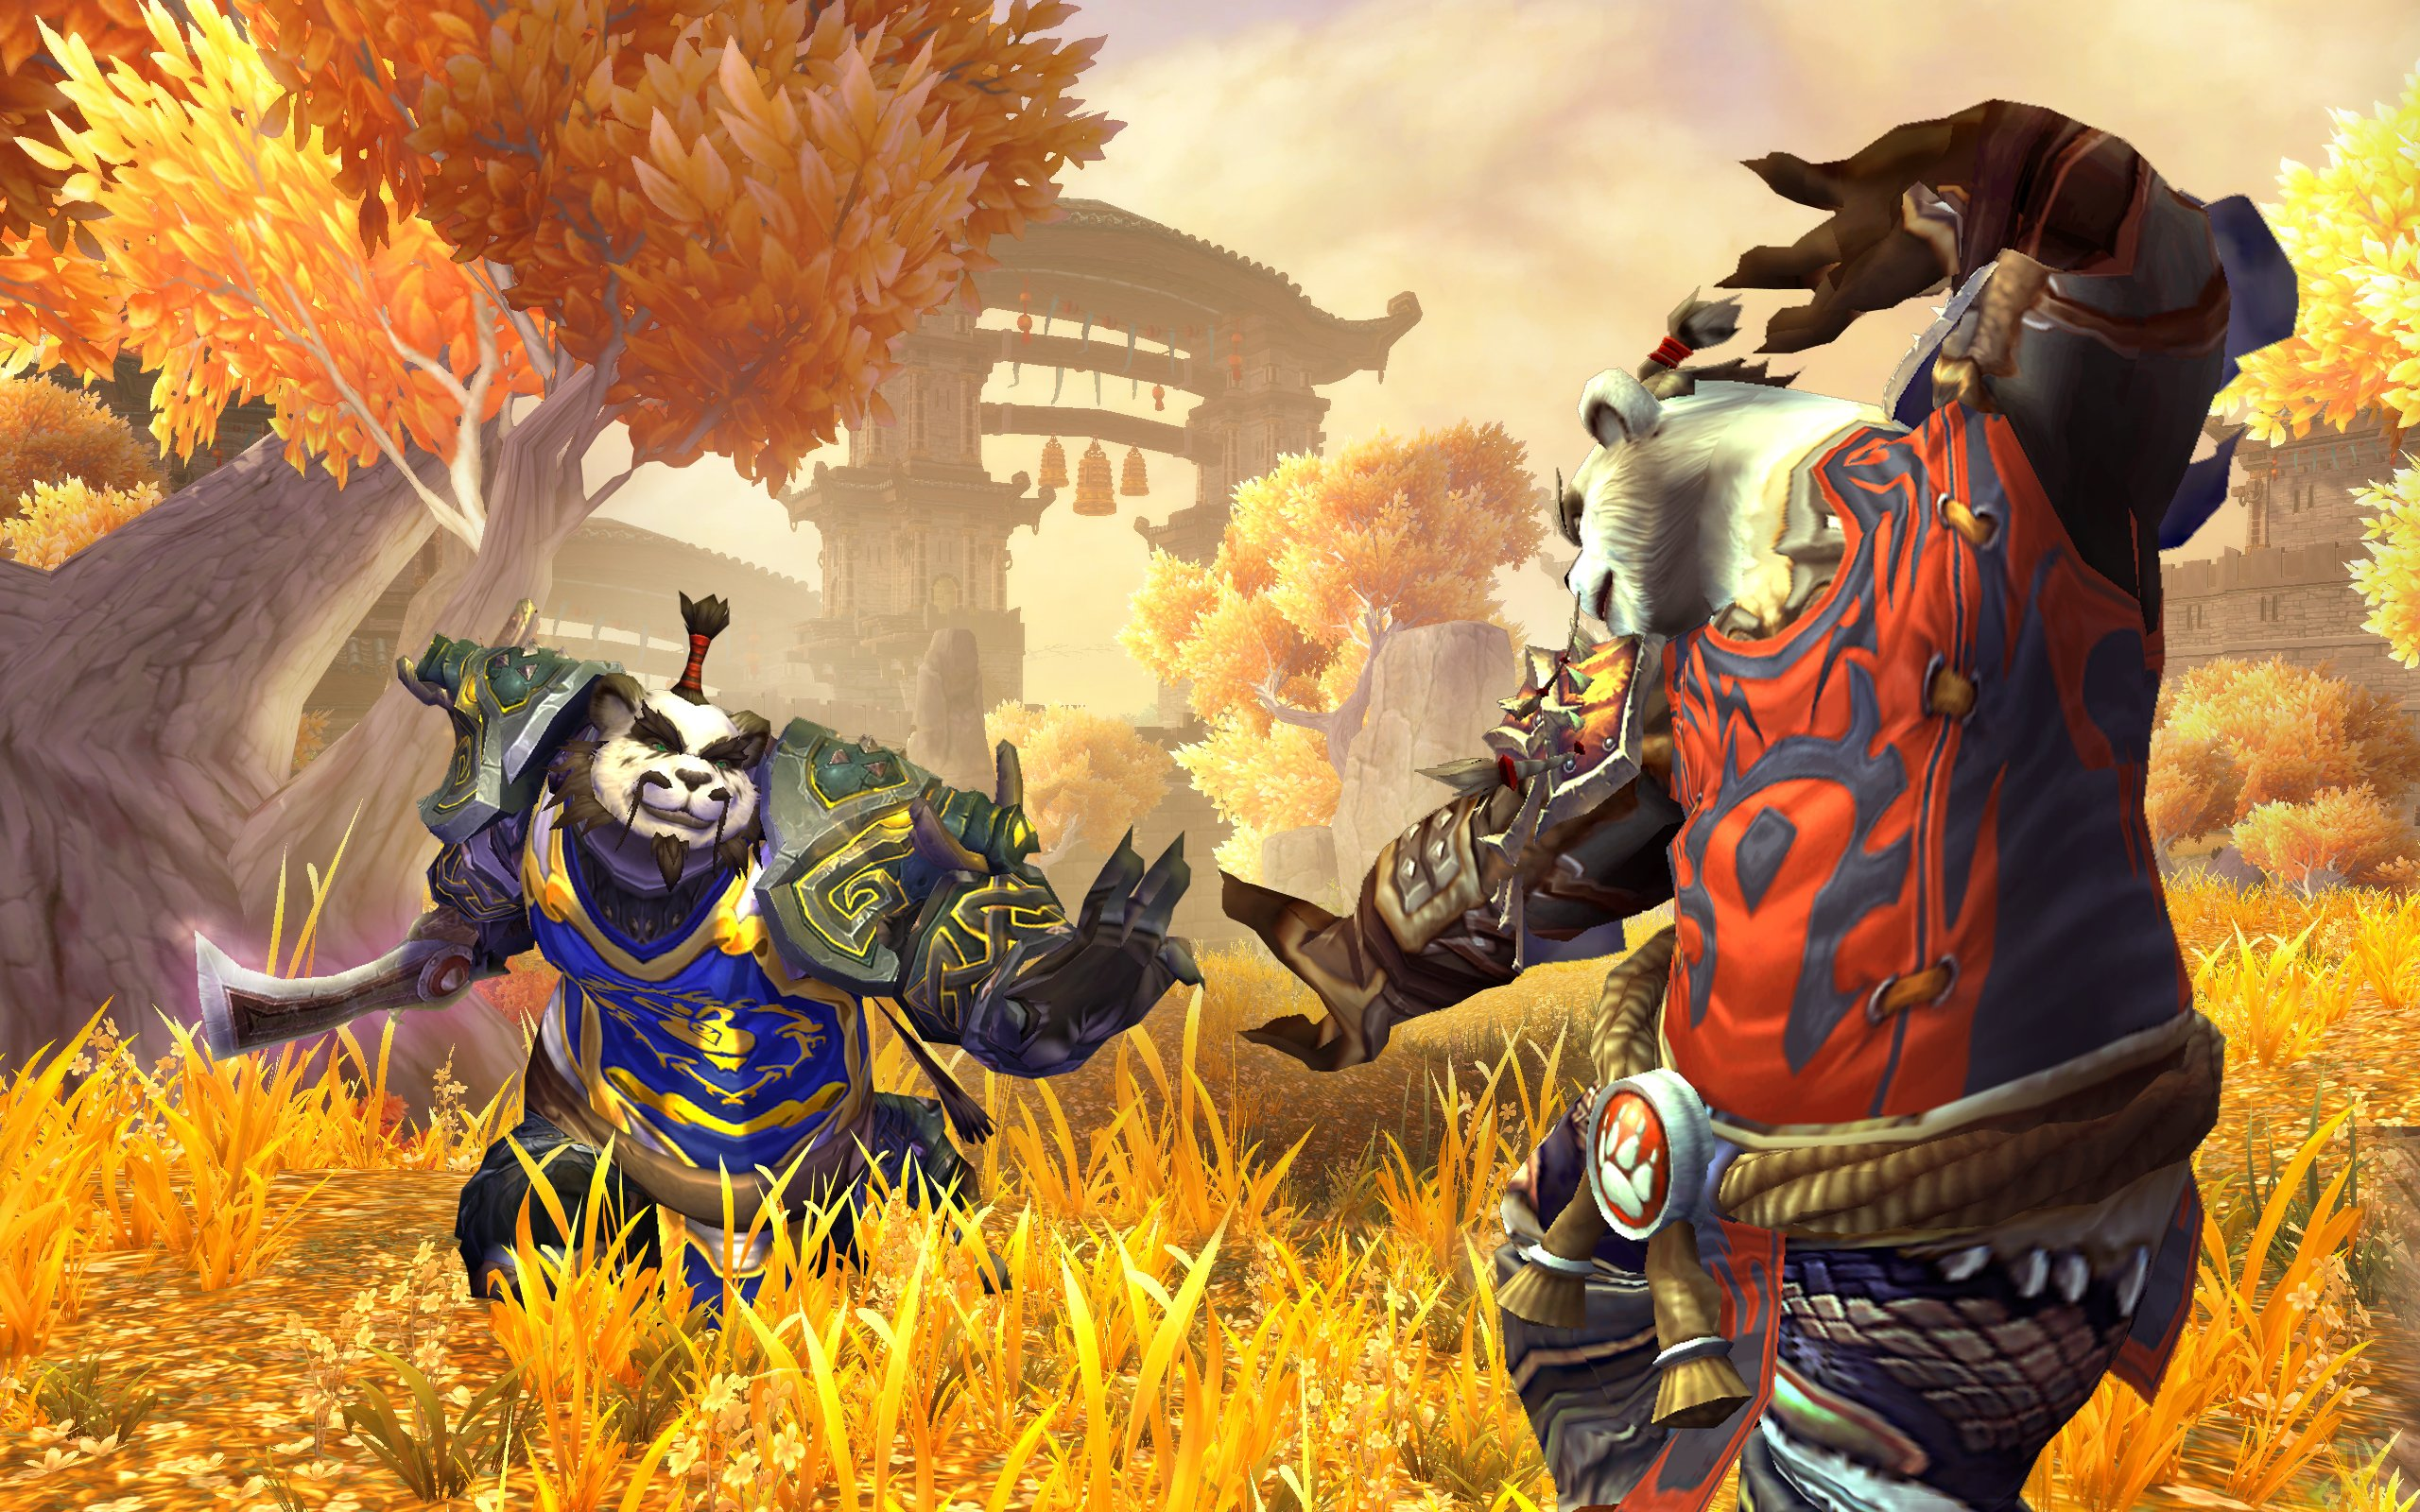 World of Warcraft: Mists of Pandaria - Collector's Edition by Blizzard Entertainment